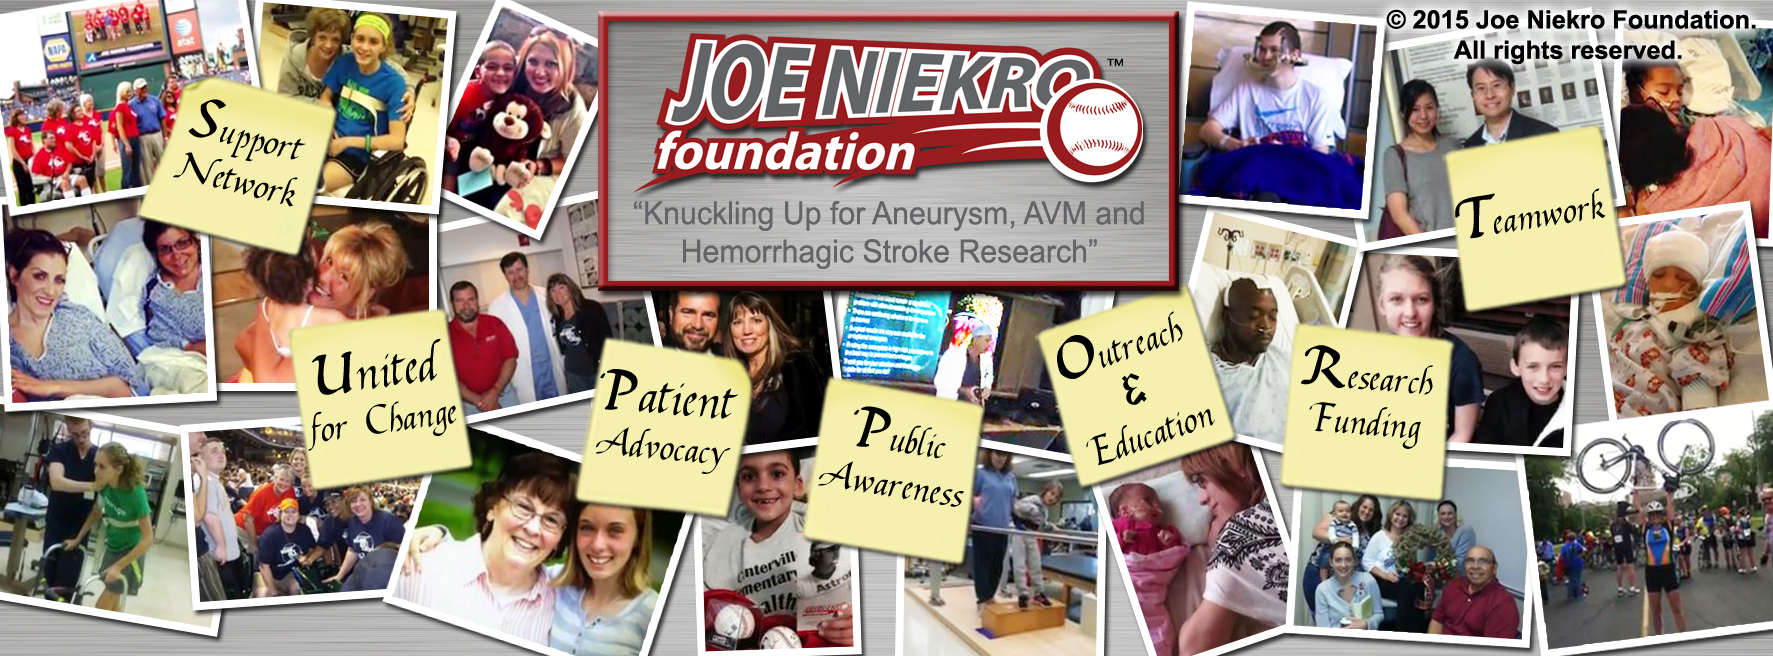 http://www.joeniekrofoundation.com/home-billboards/2631/attachment/survivor-banner-tm-2/